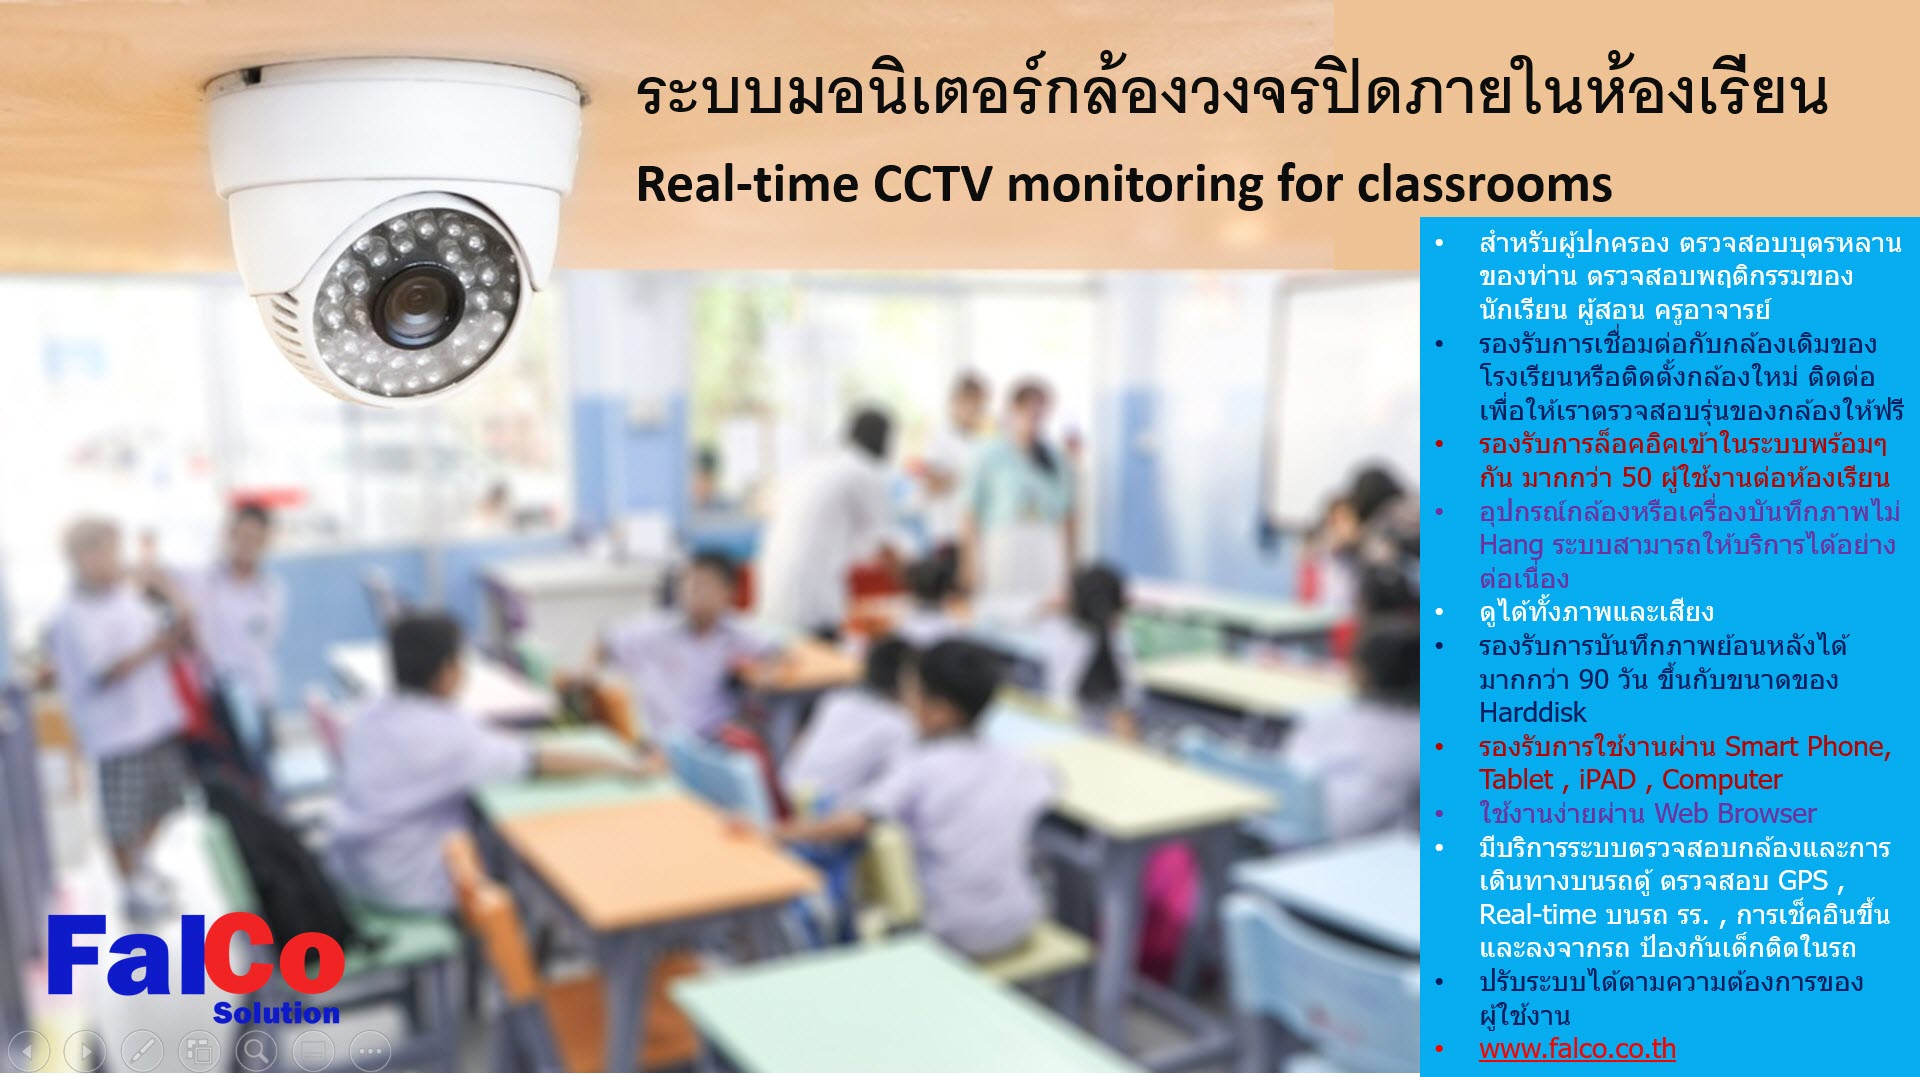 cctv_real-time_classrooms